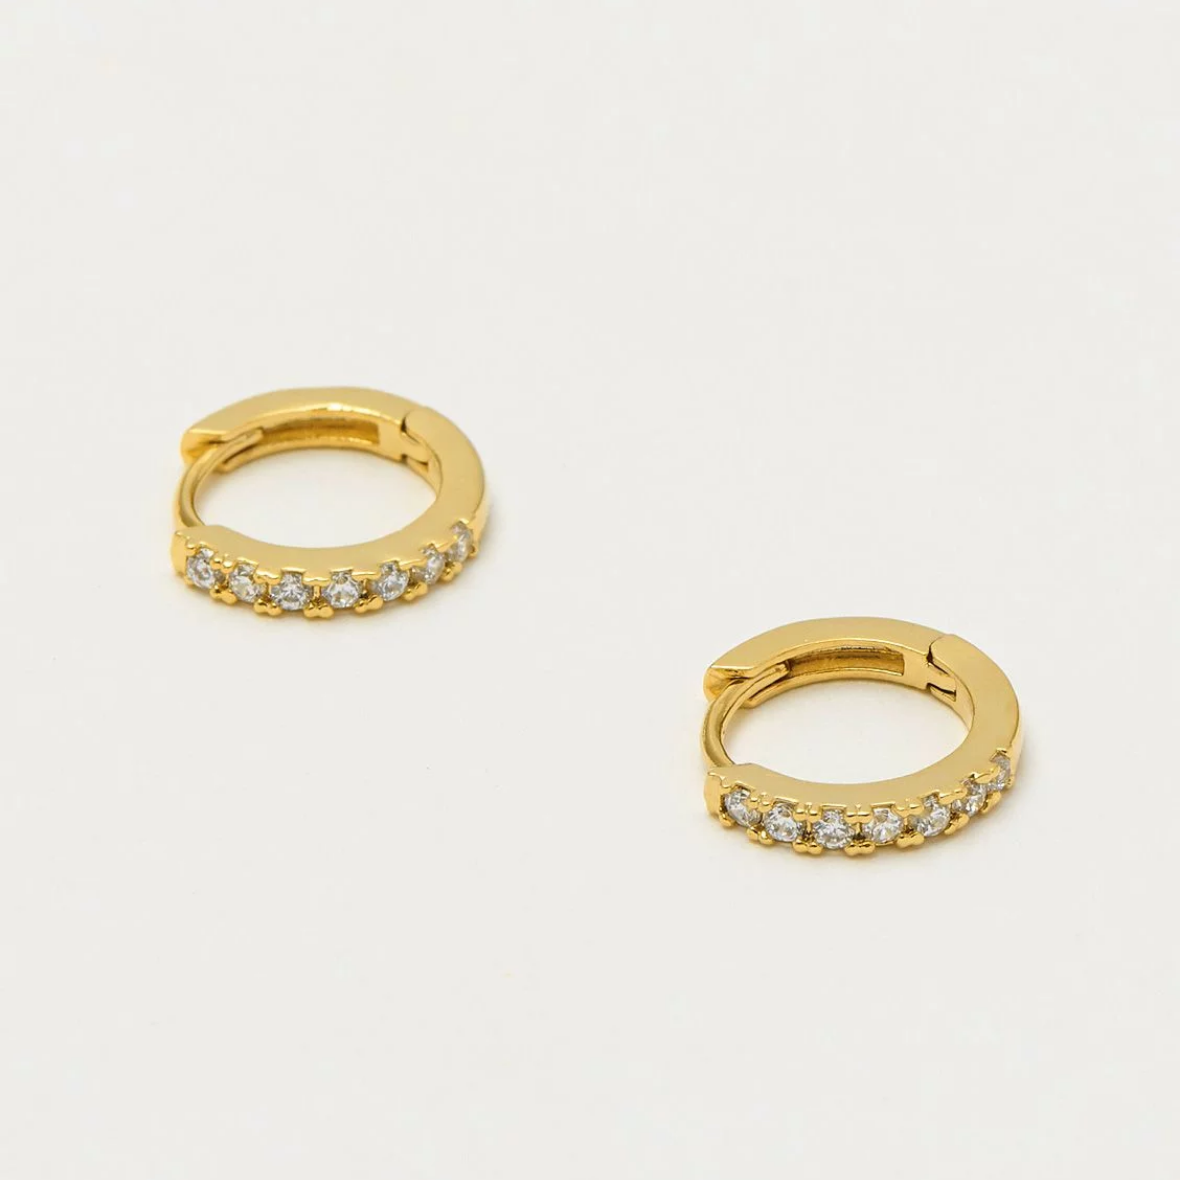 Estella Bartlett - Pave Hoop Earrings Gold Plated - HAYGEN